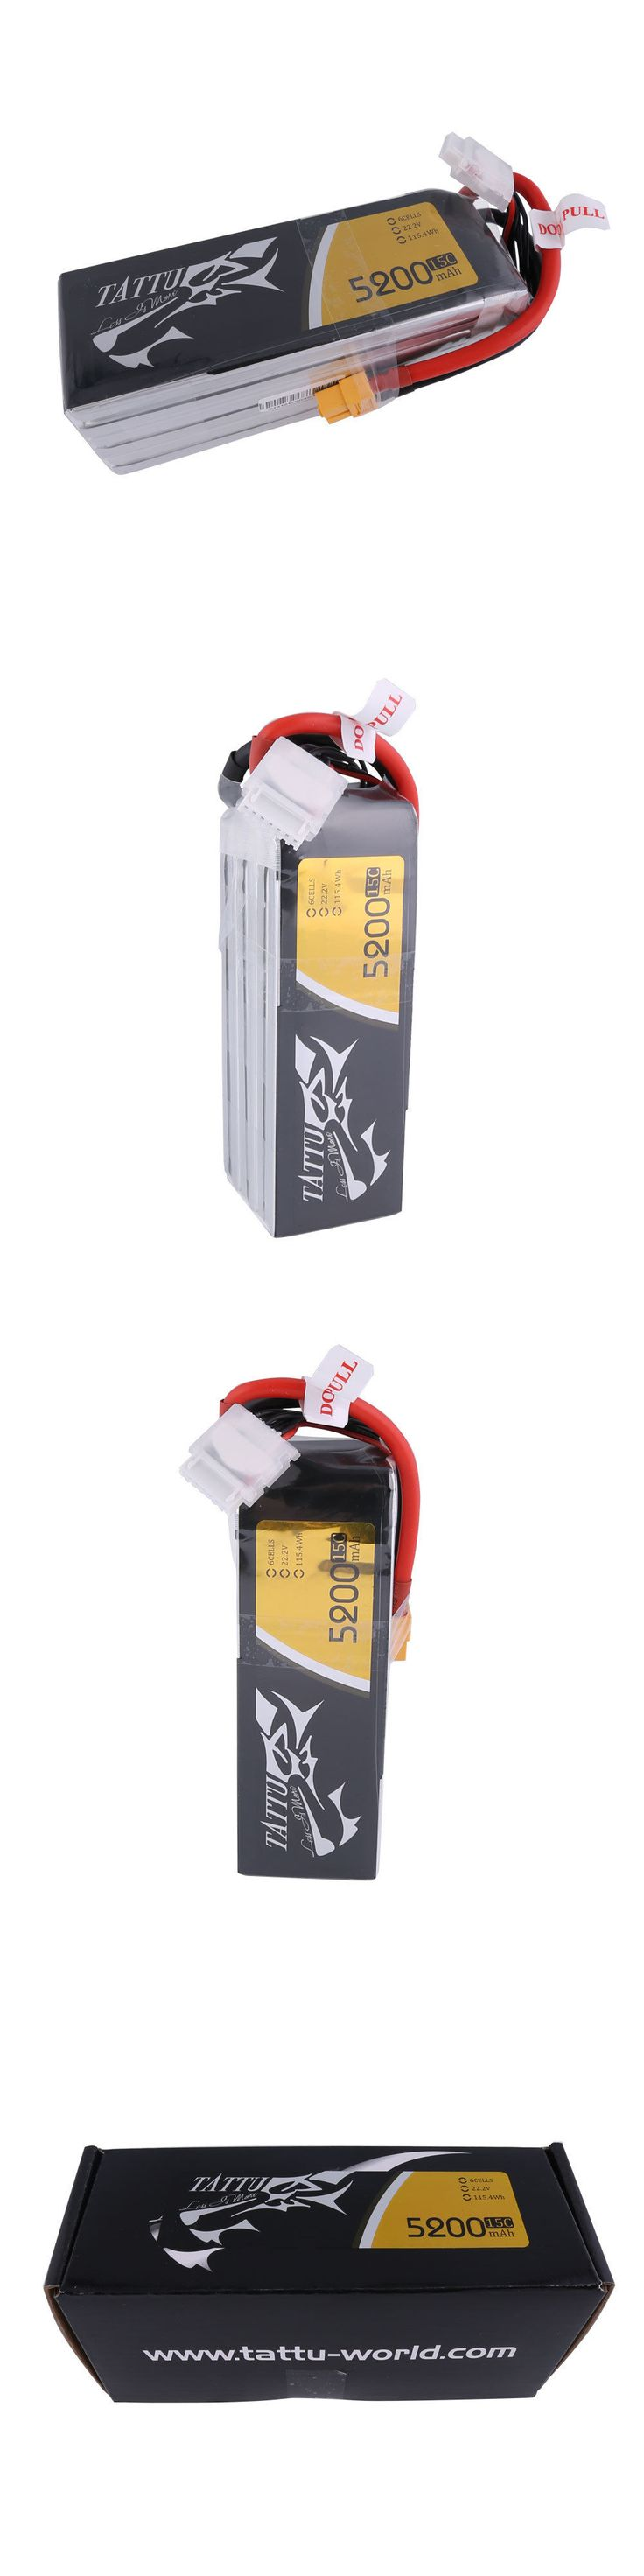 Batteries 40700: 6Cell 5200Mah 22.2V 15C 6S1p Lipo Battery Xt60 Plug For Uav Drone Helicopter Fpv -> BUY IT NOW ONLY: $38.12 on eBay!